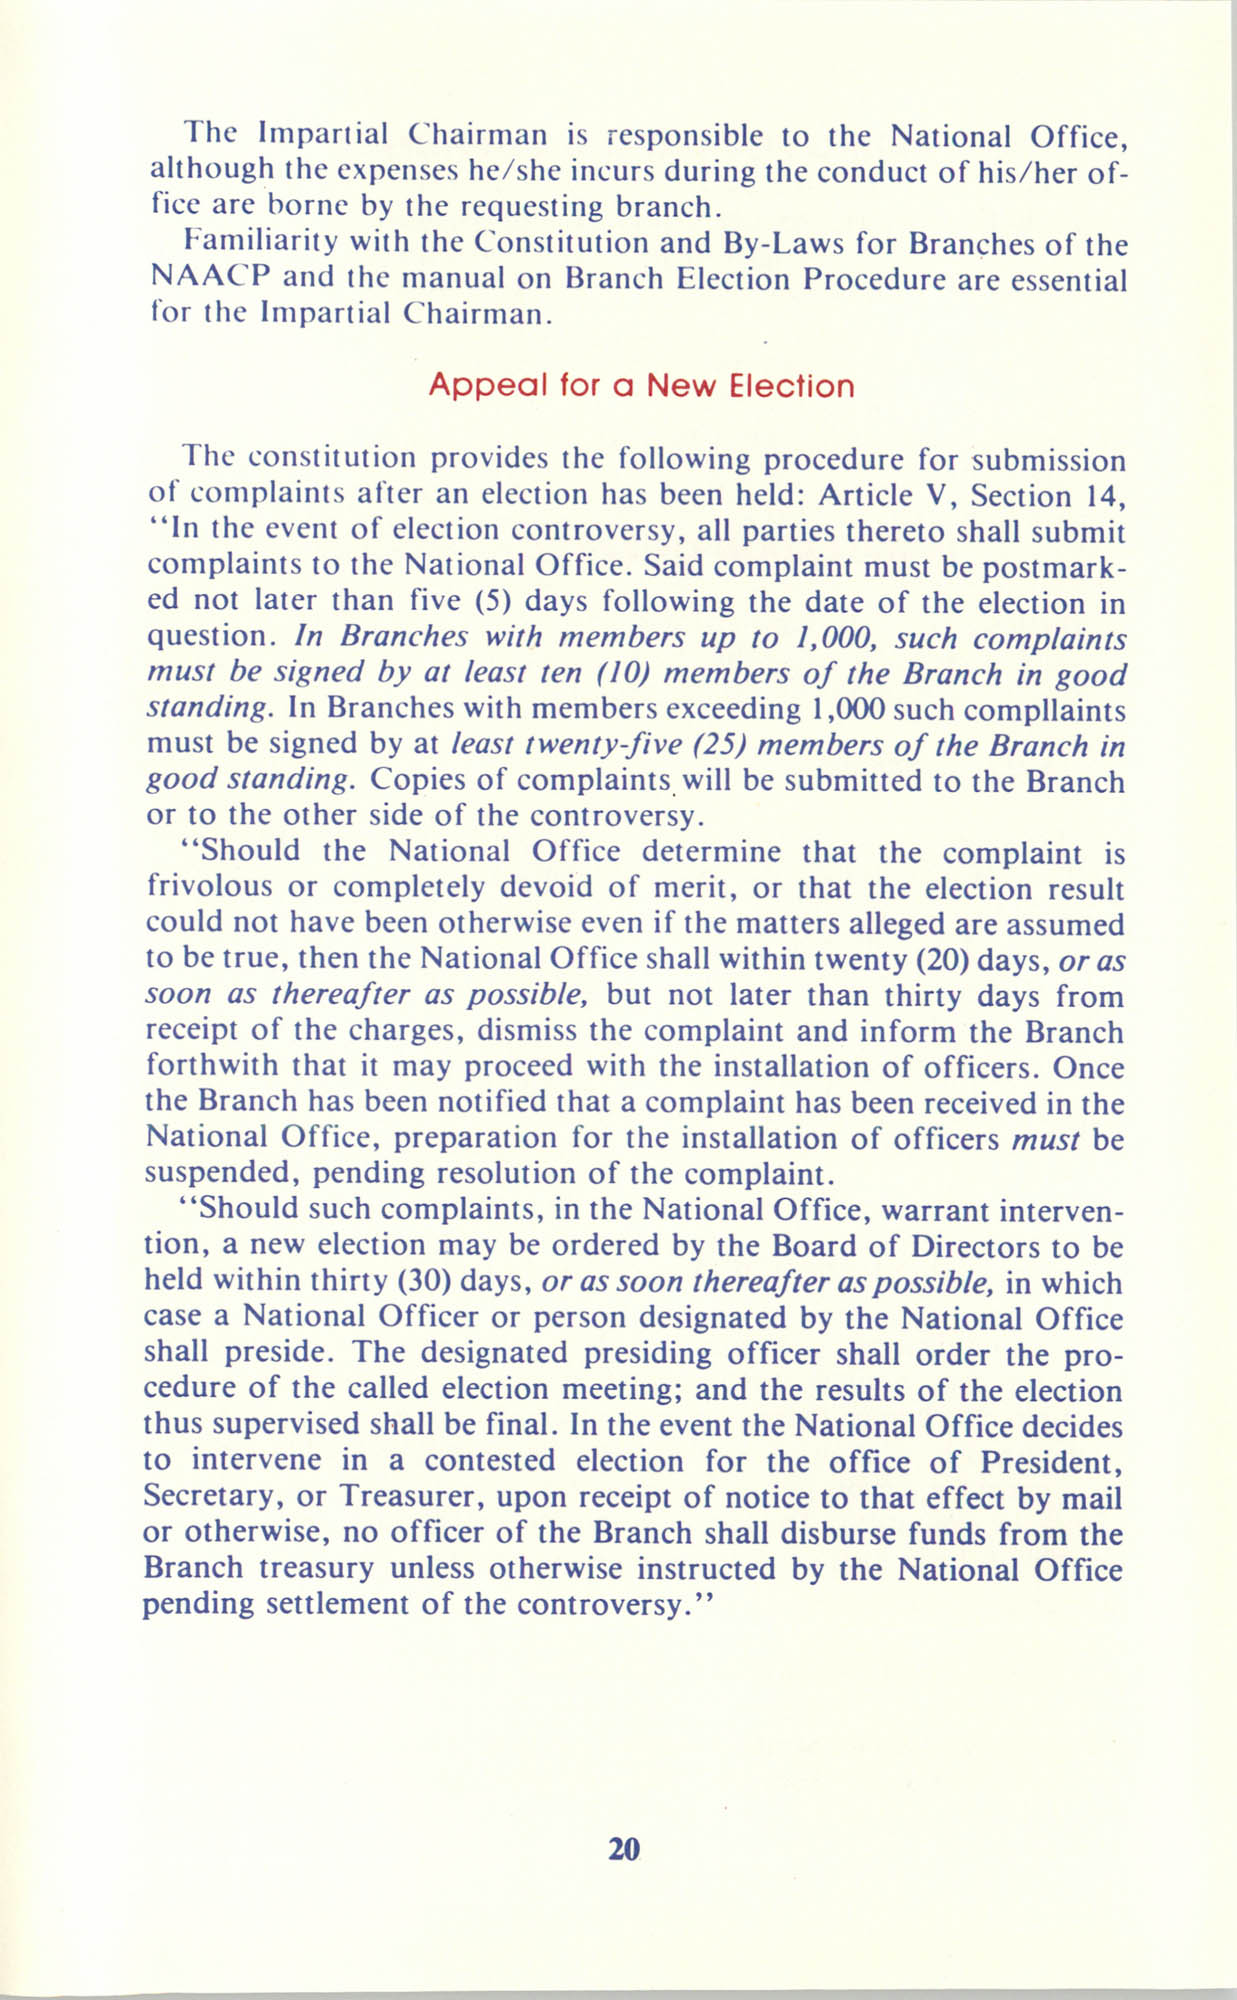 Manual on Branch Election Procedure, Page 20